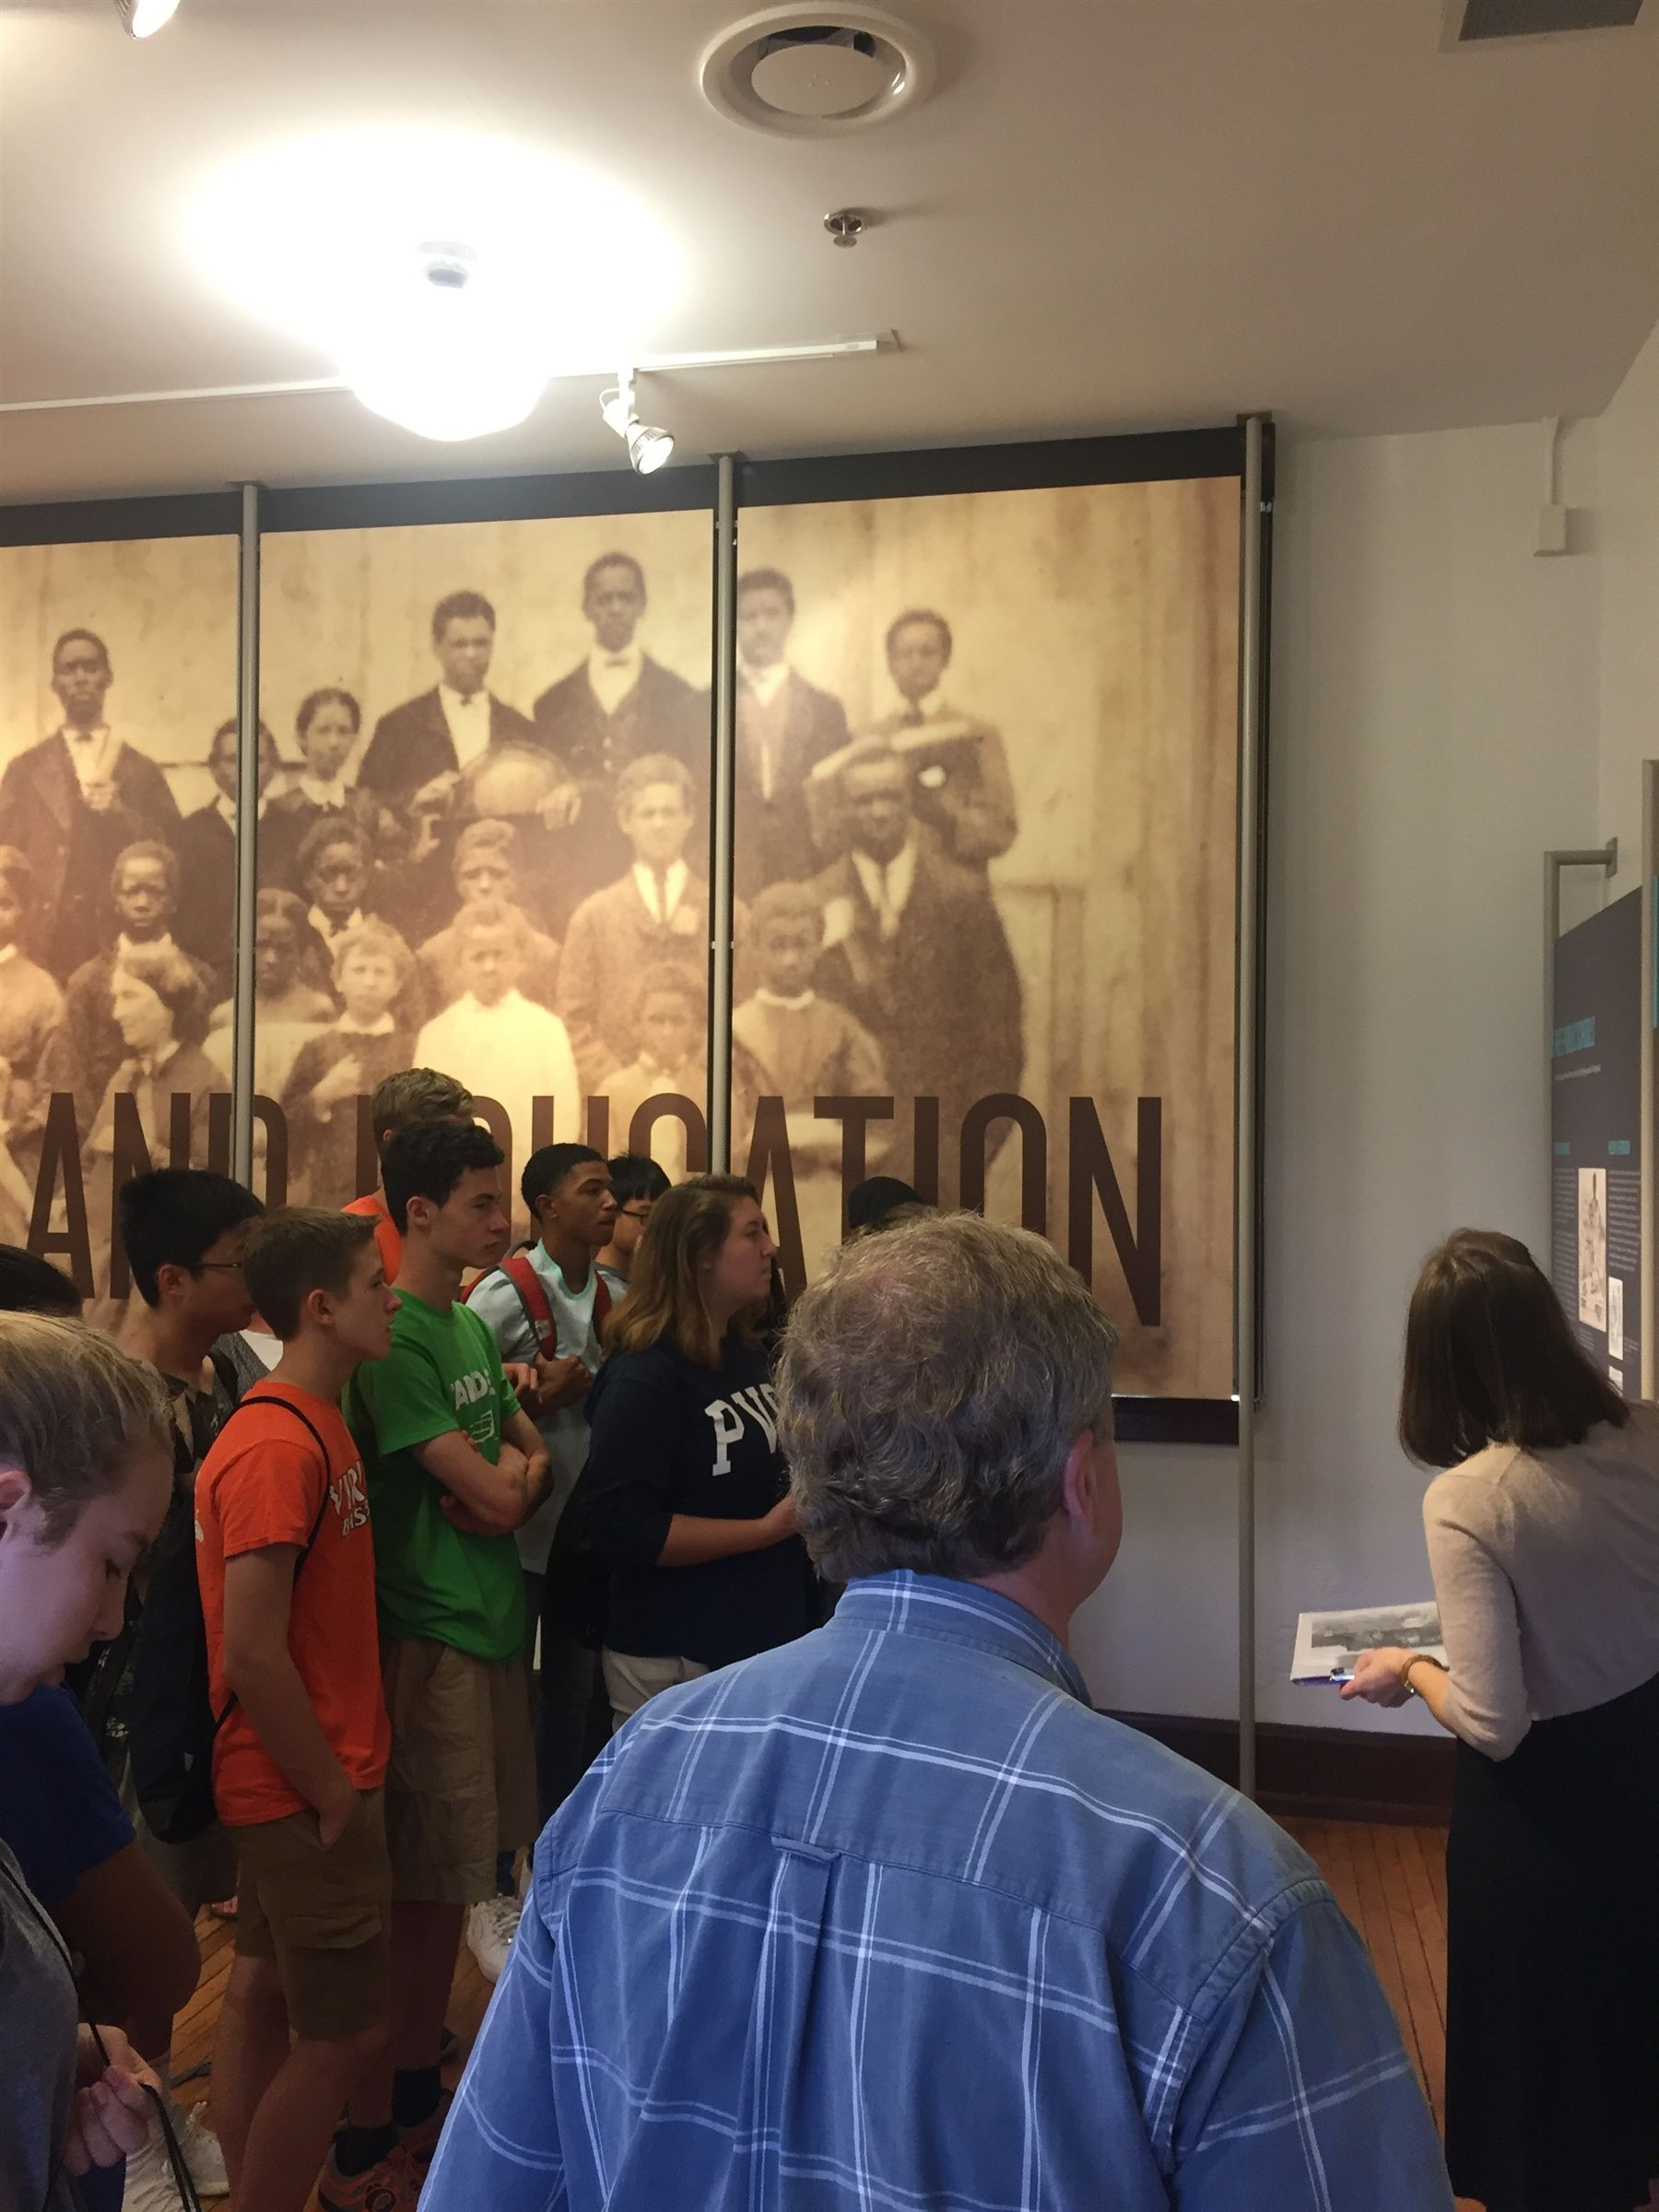 10th studies local history at Jefferson School